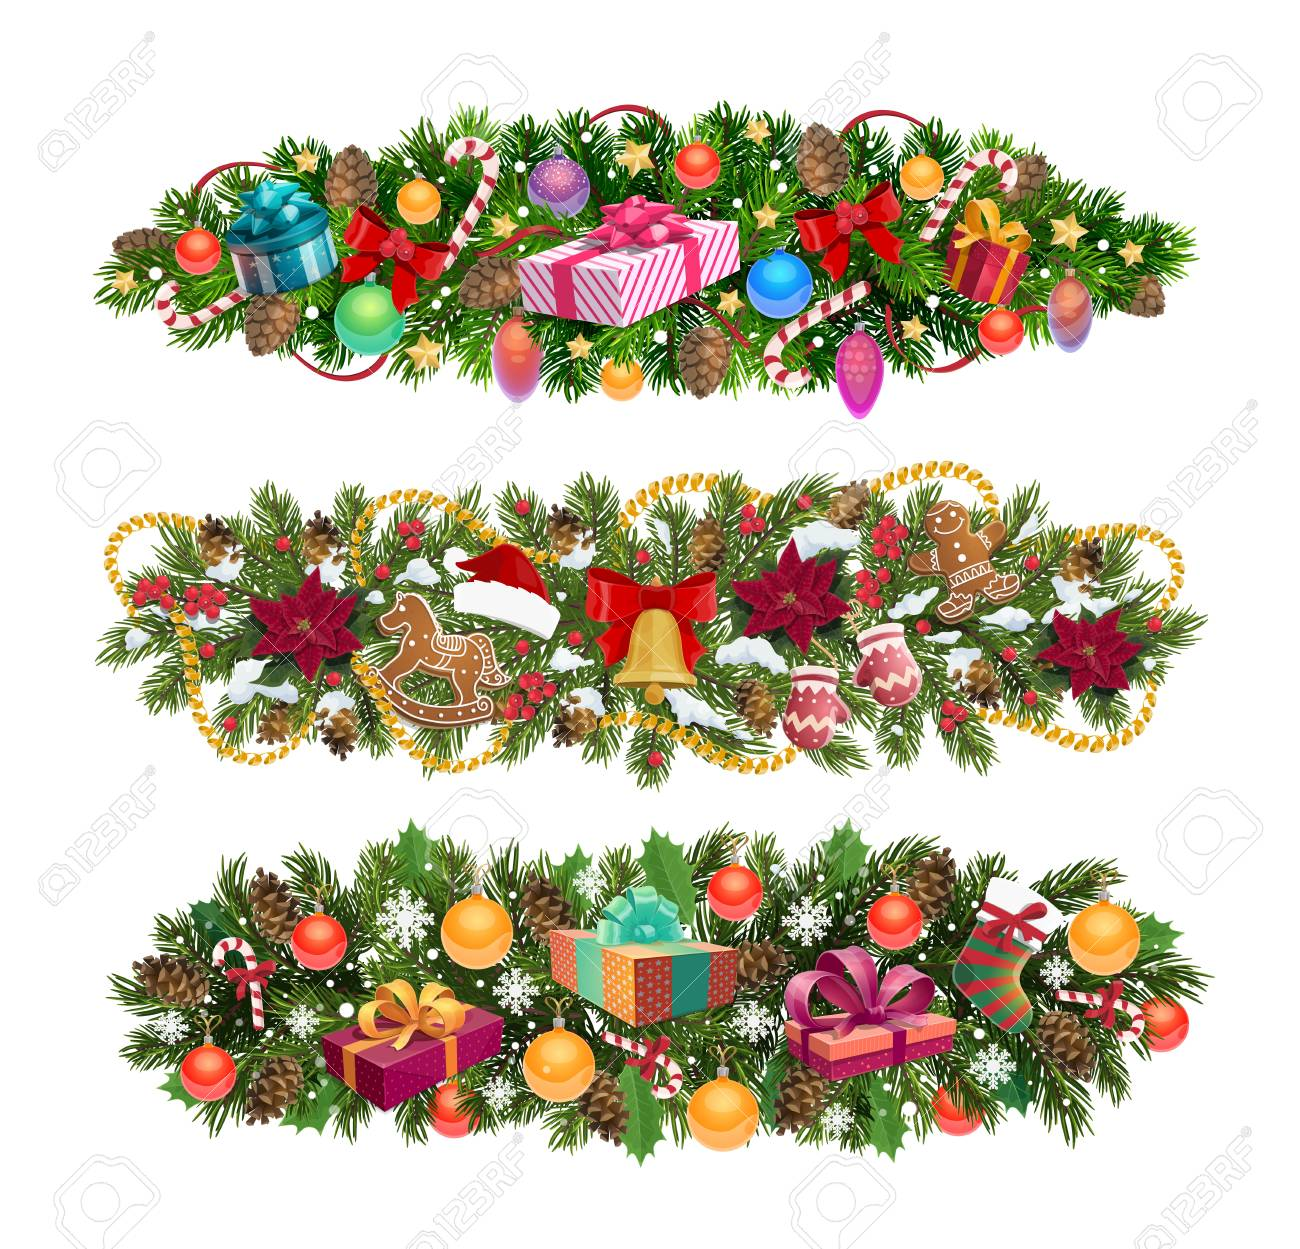 Christmas Tree Garland.Christmas Wreath Border Ornaments And Winter Holiday Decorations